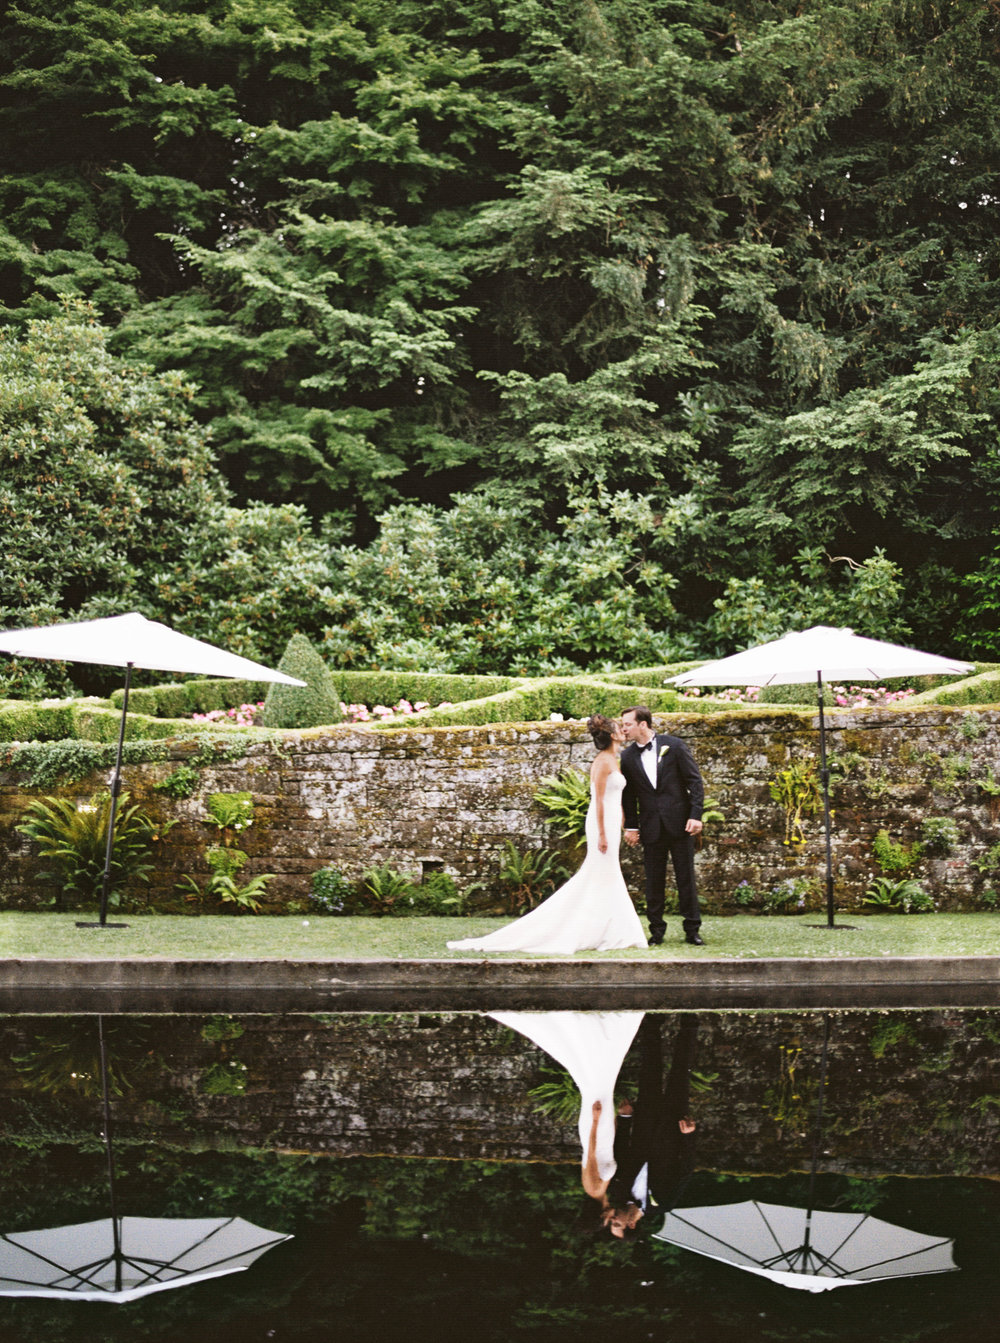 086OutliveCreative_Travel_Photographer_Videographer_Lewis&Clark_Oregon_Elegant_BlackTie_Destination_Wedding.jpg